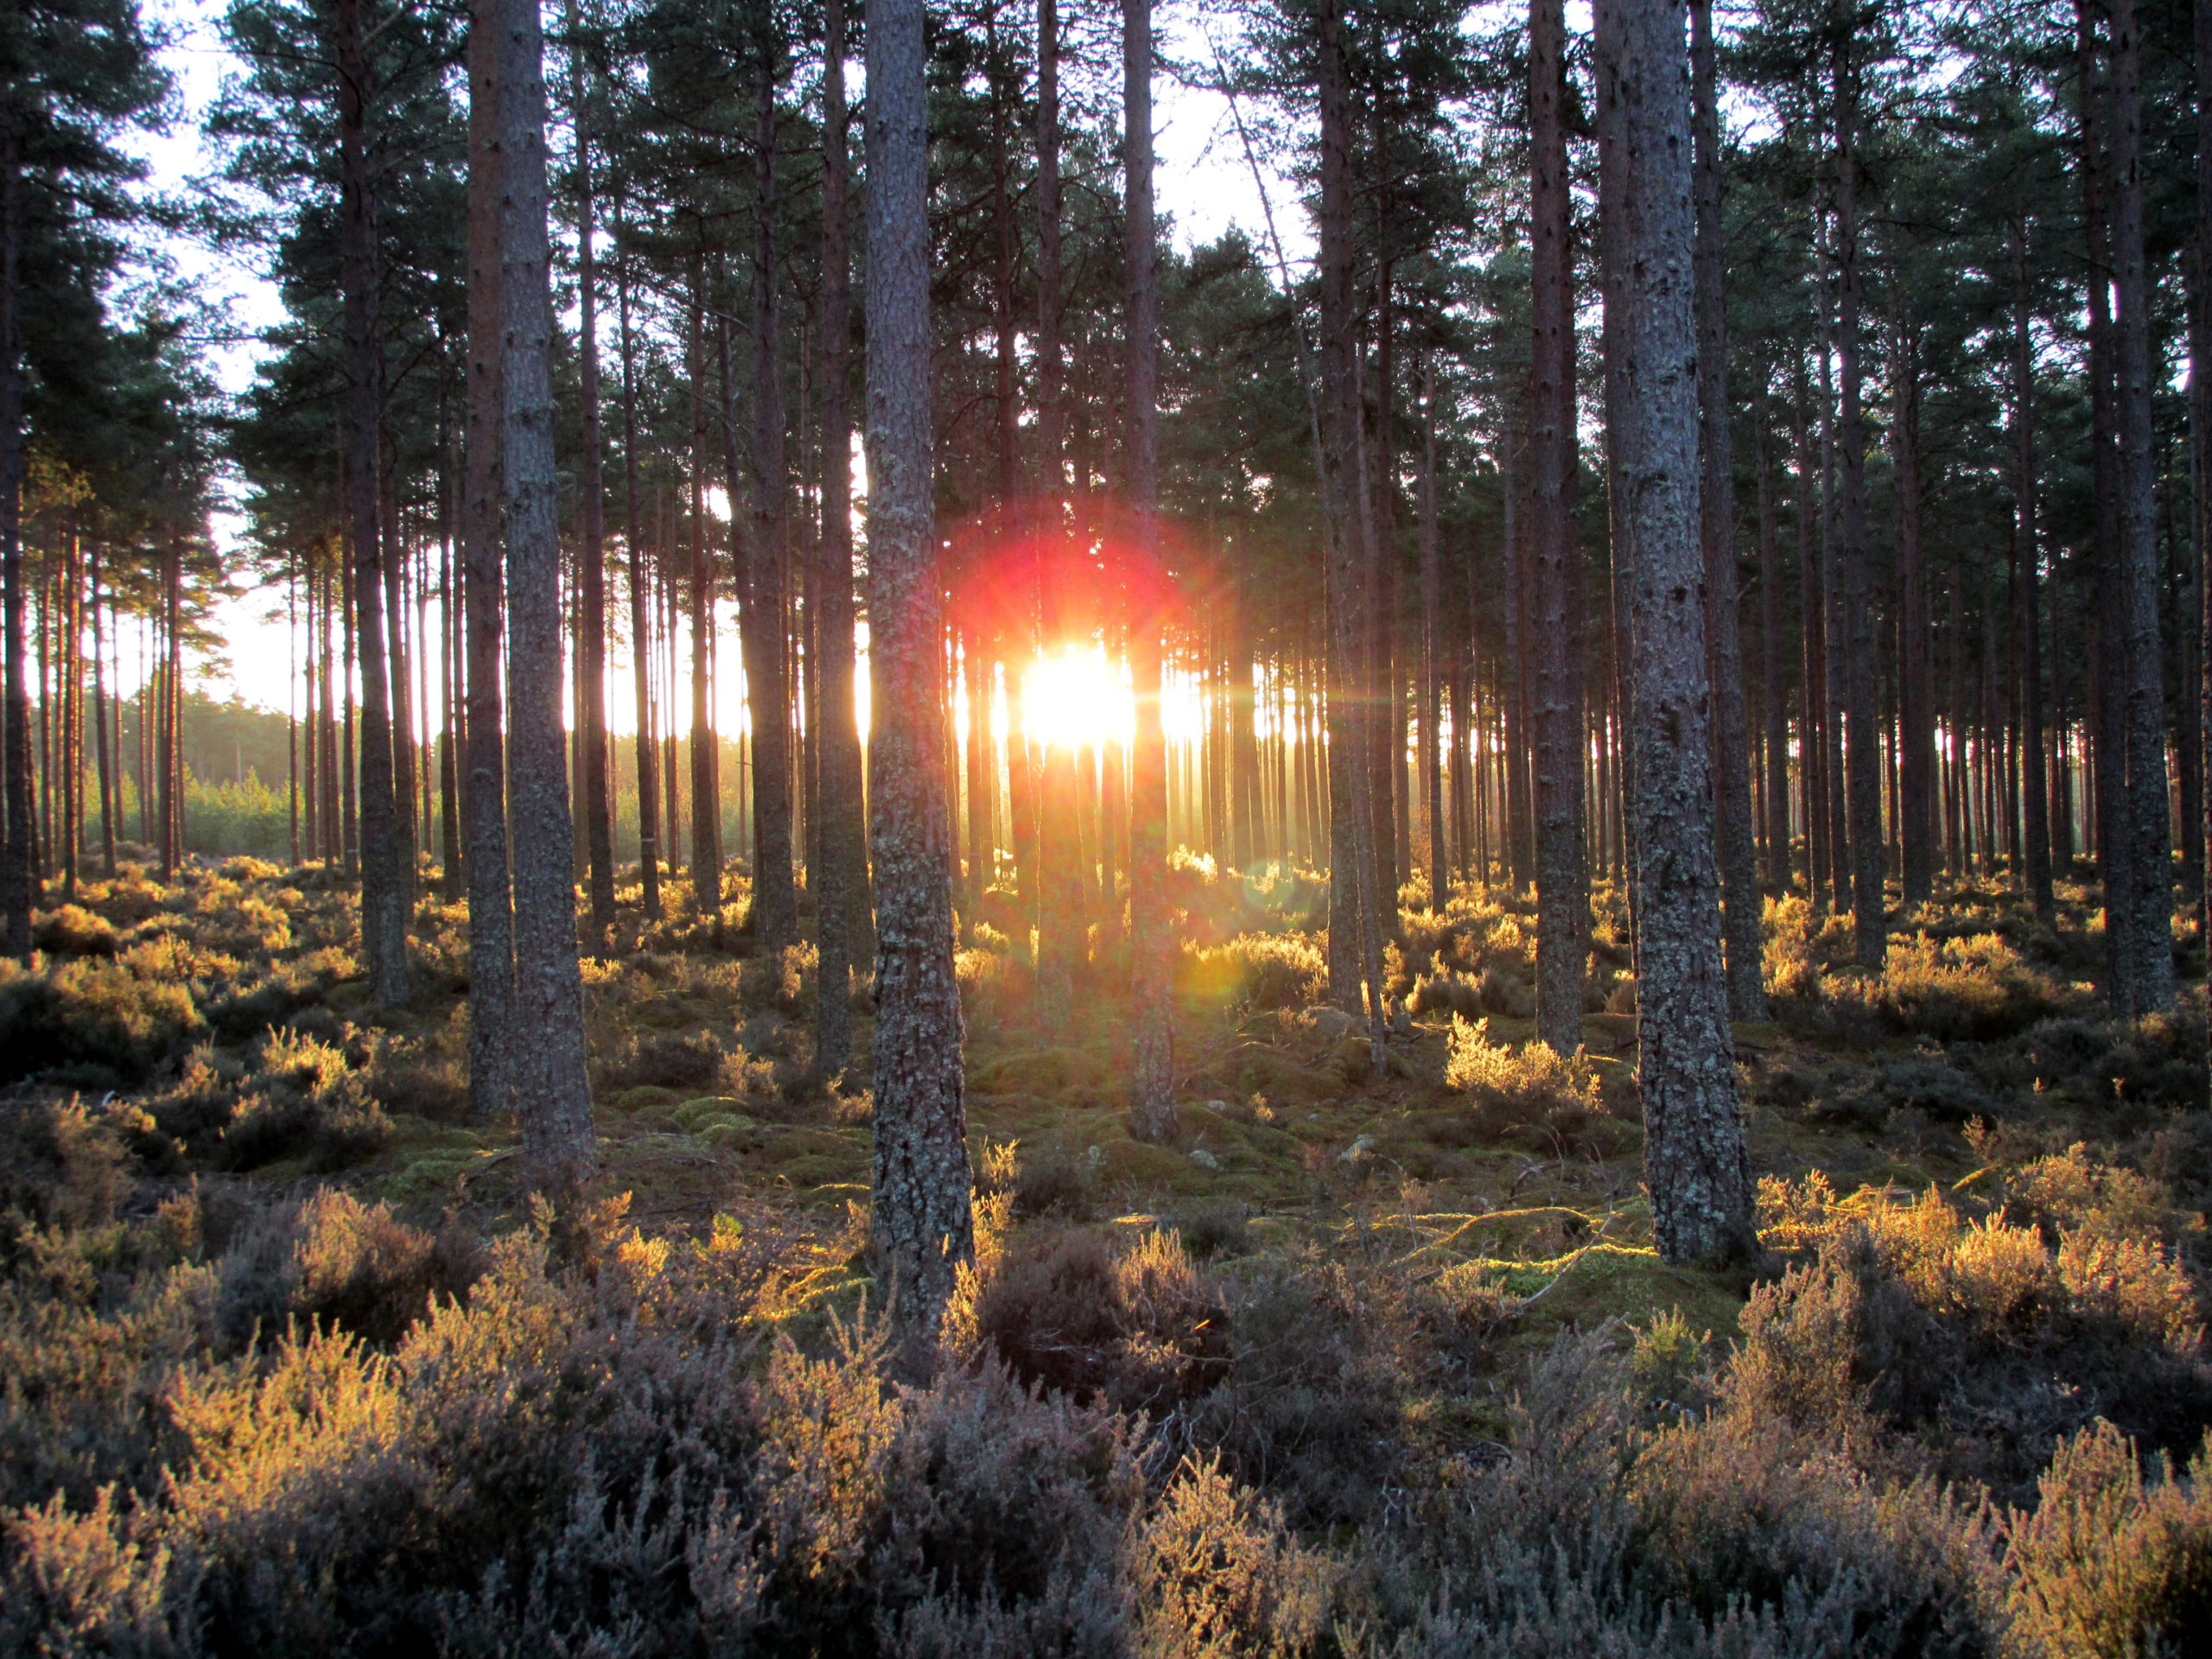 Culbin forest in Nairn